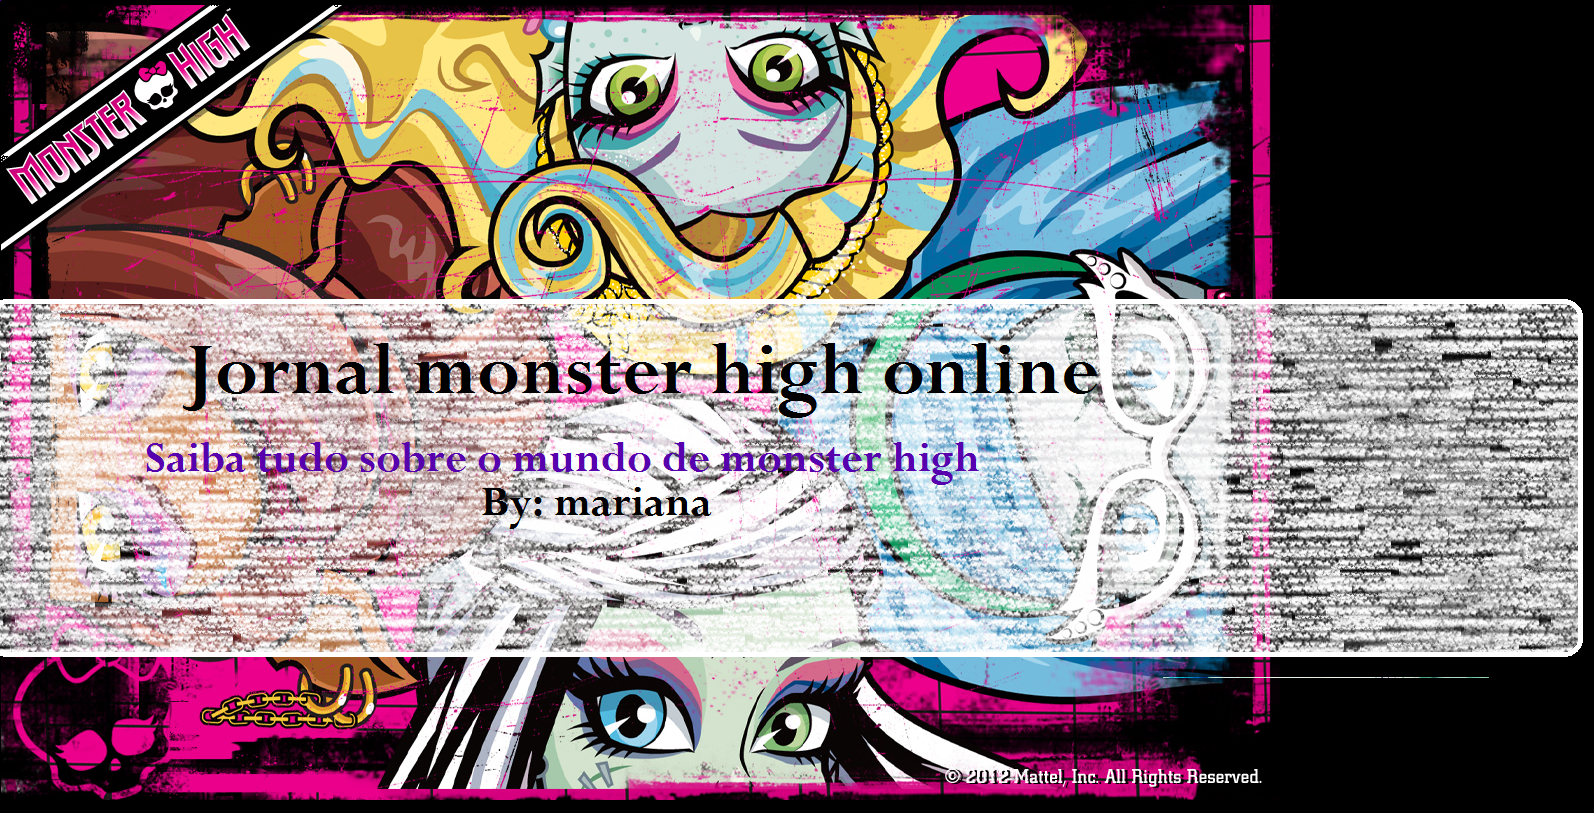 Jornal Monster High on line